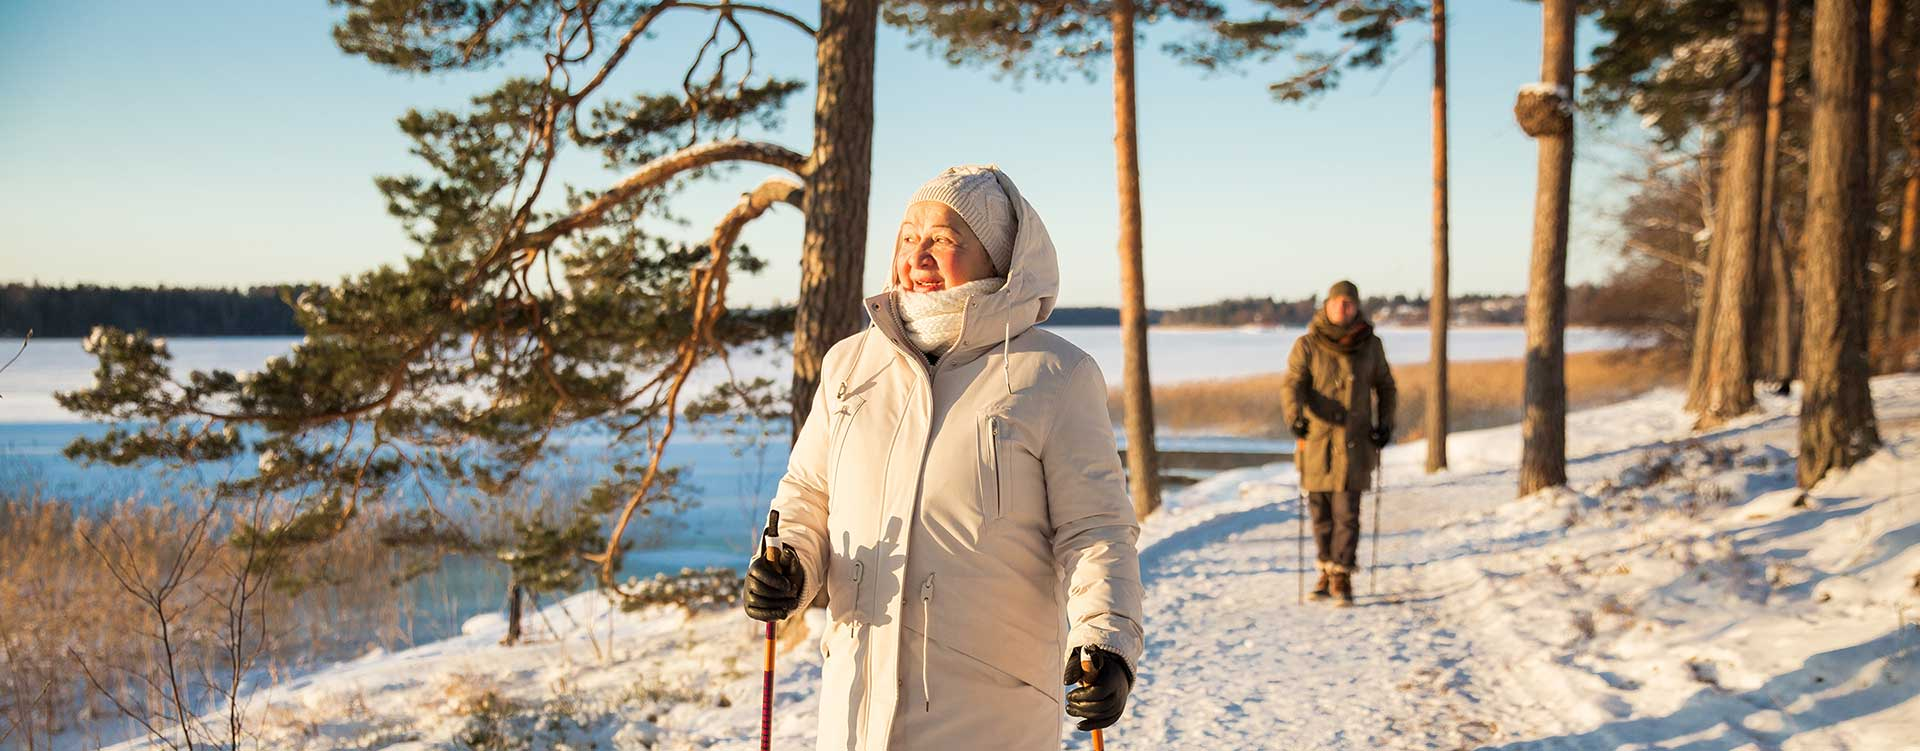 Senior woman and man hiking in winter forest during daytime.